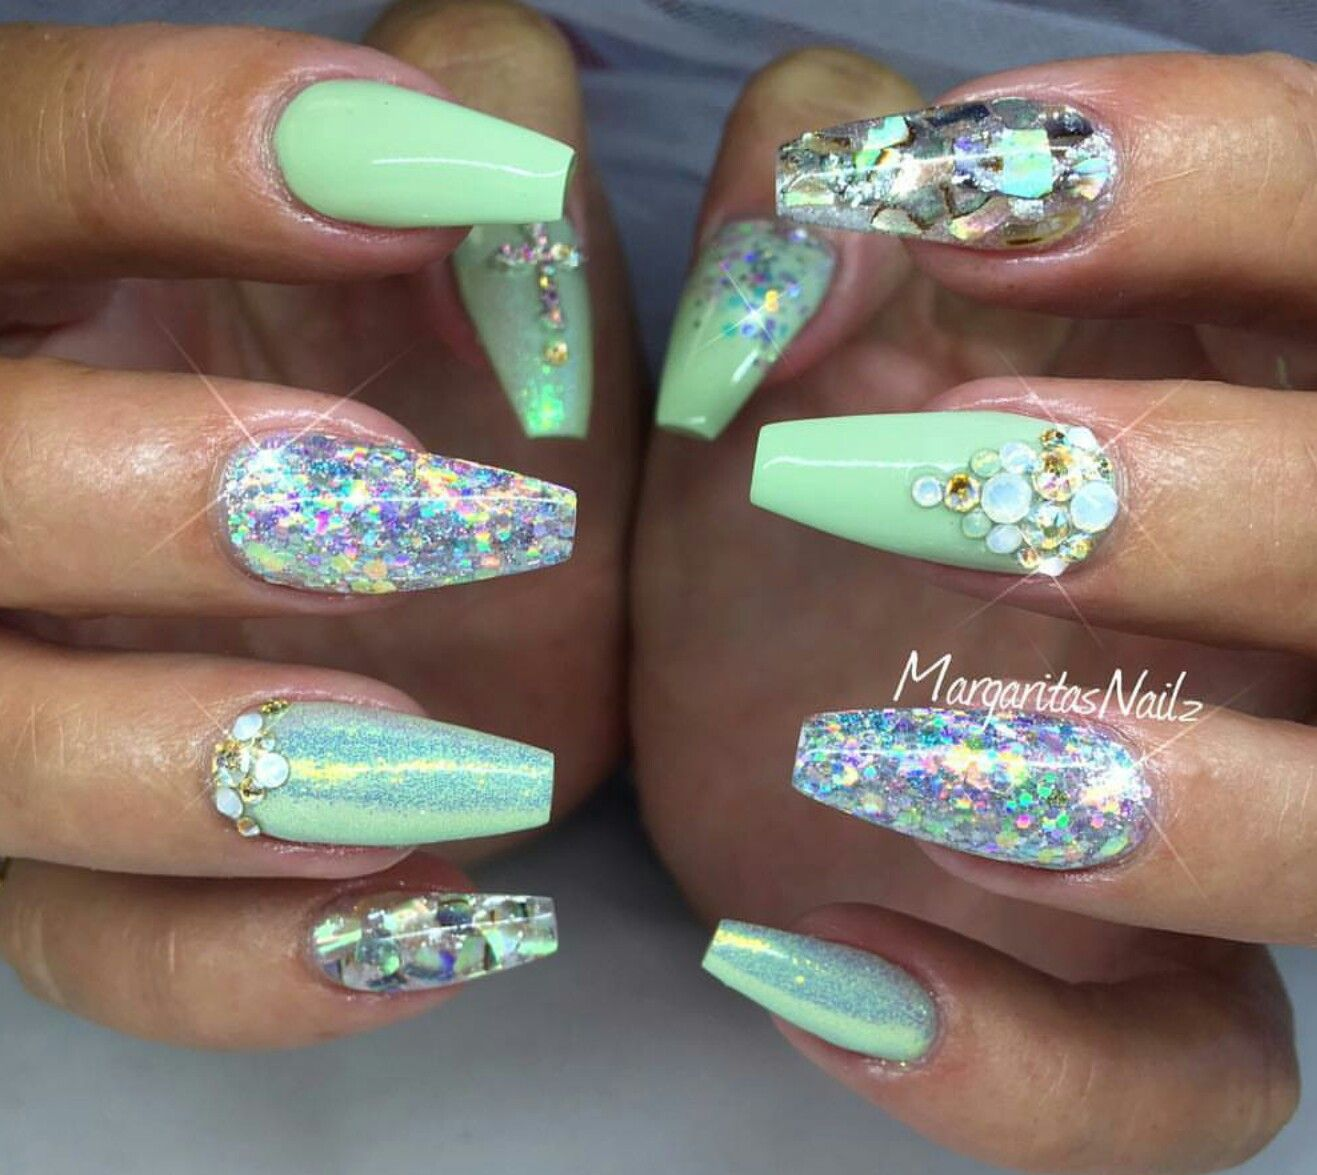 Acrylic Nails With Mint Green And Silver Glitter Shellac Quinceanera Nails Green Nails Mint Green Nails